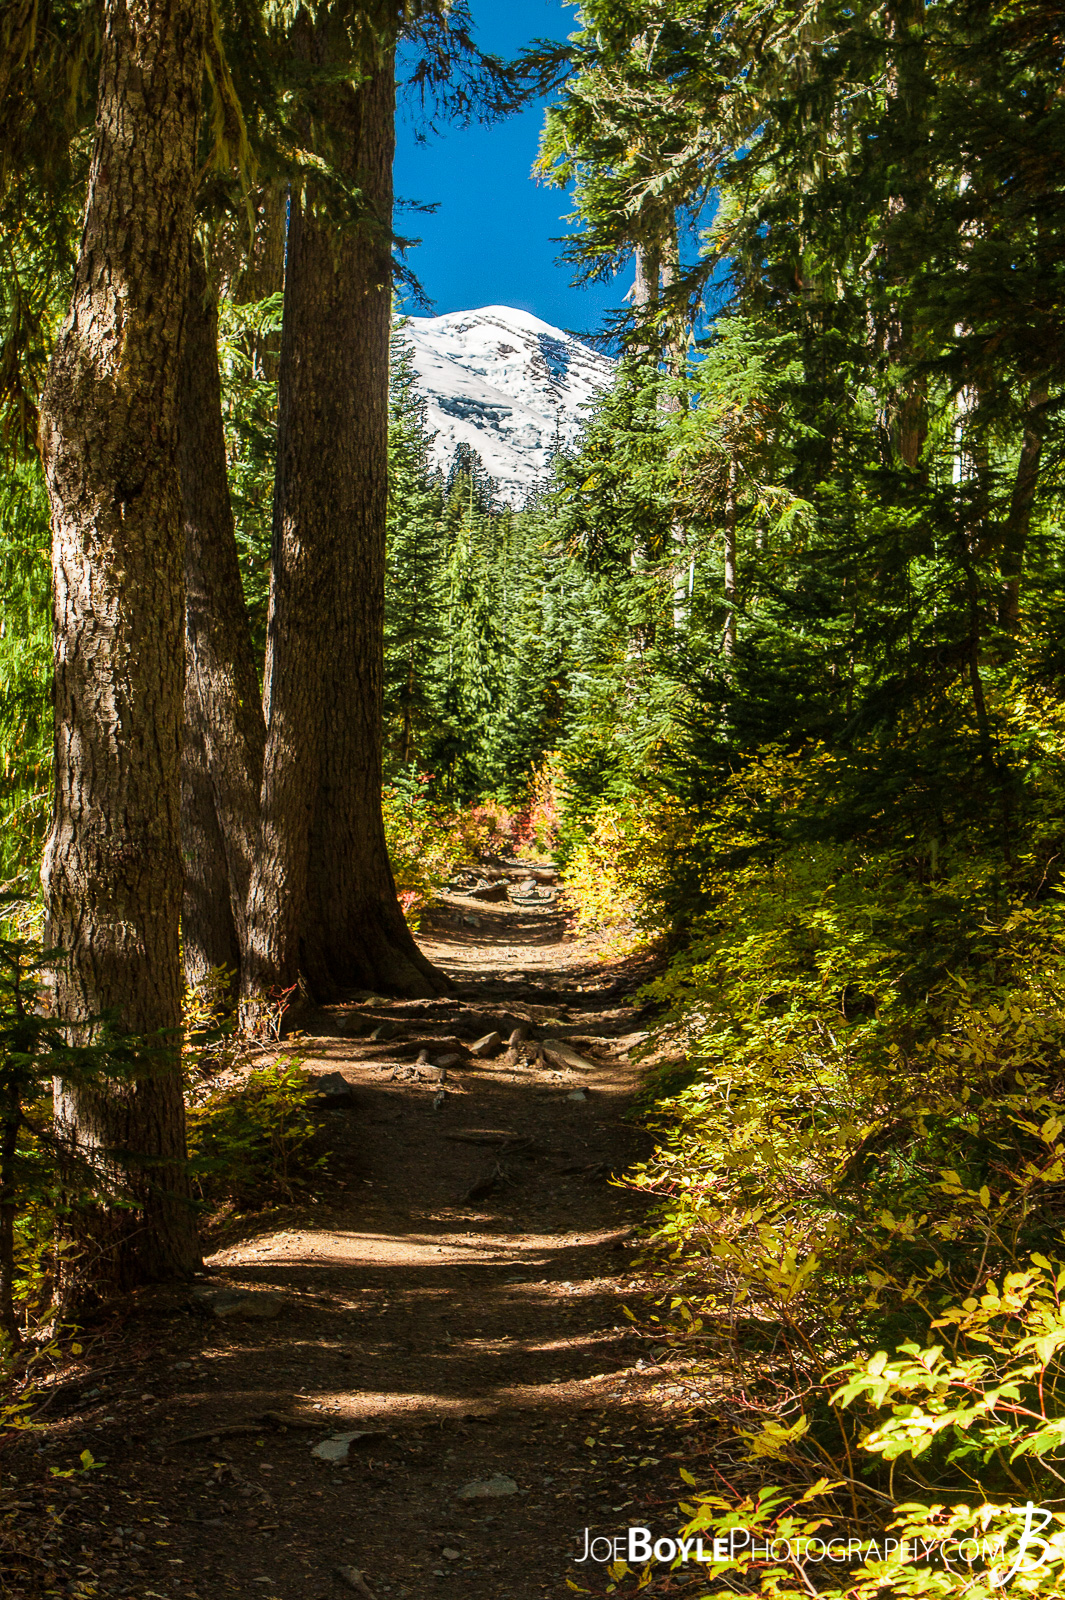 I took this photo of Mount Rainier from the Wonderland Trail near Summerland Campground.